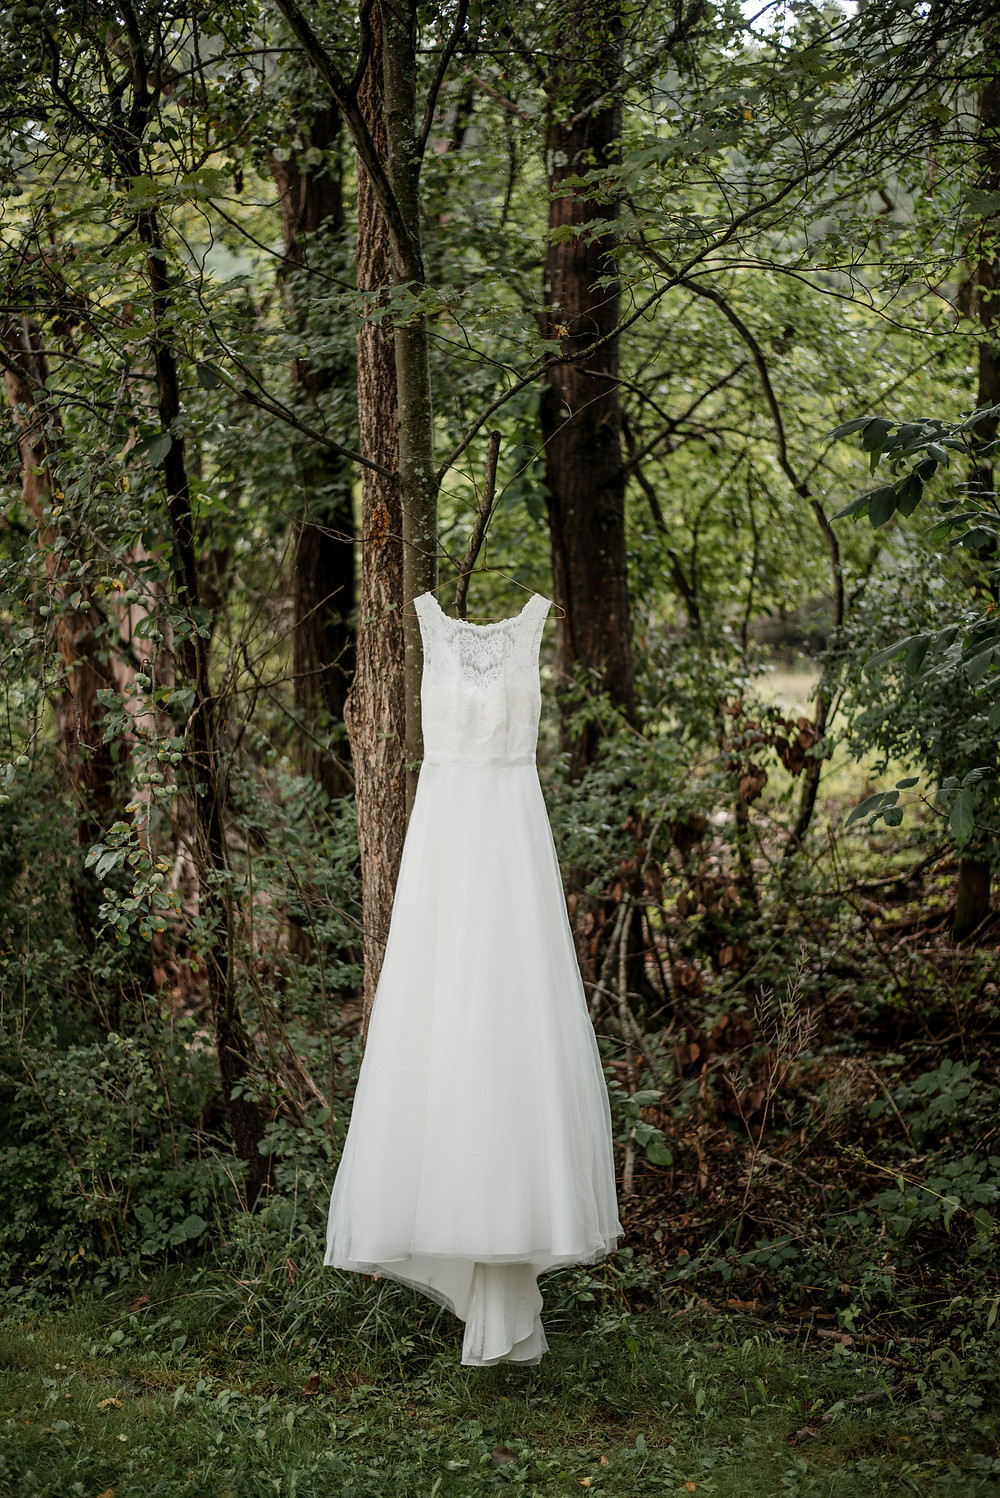 Wedding dress, lace, wedding photographer